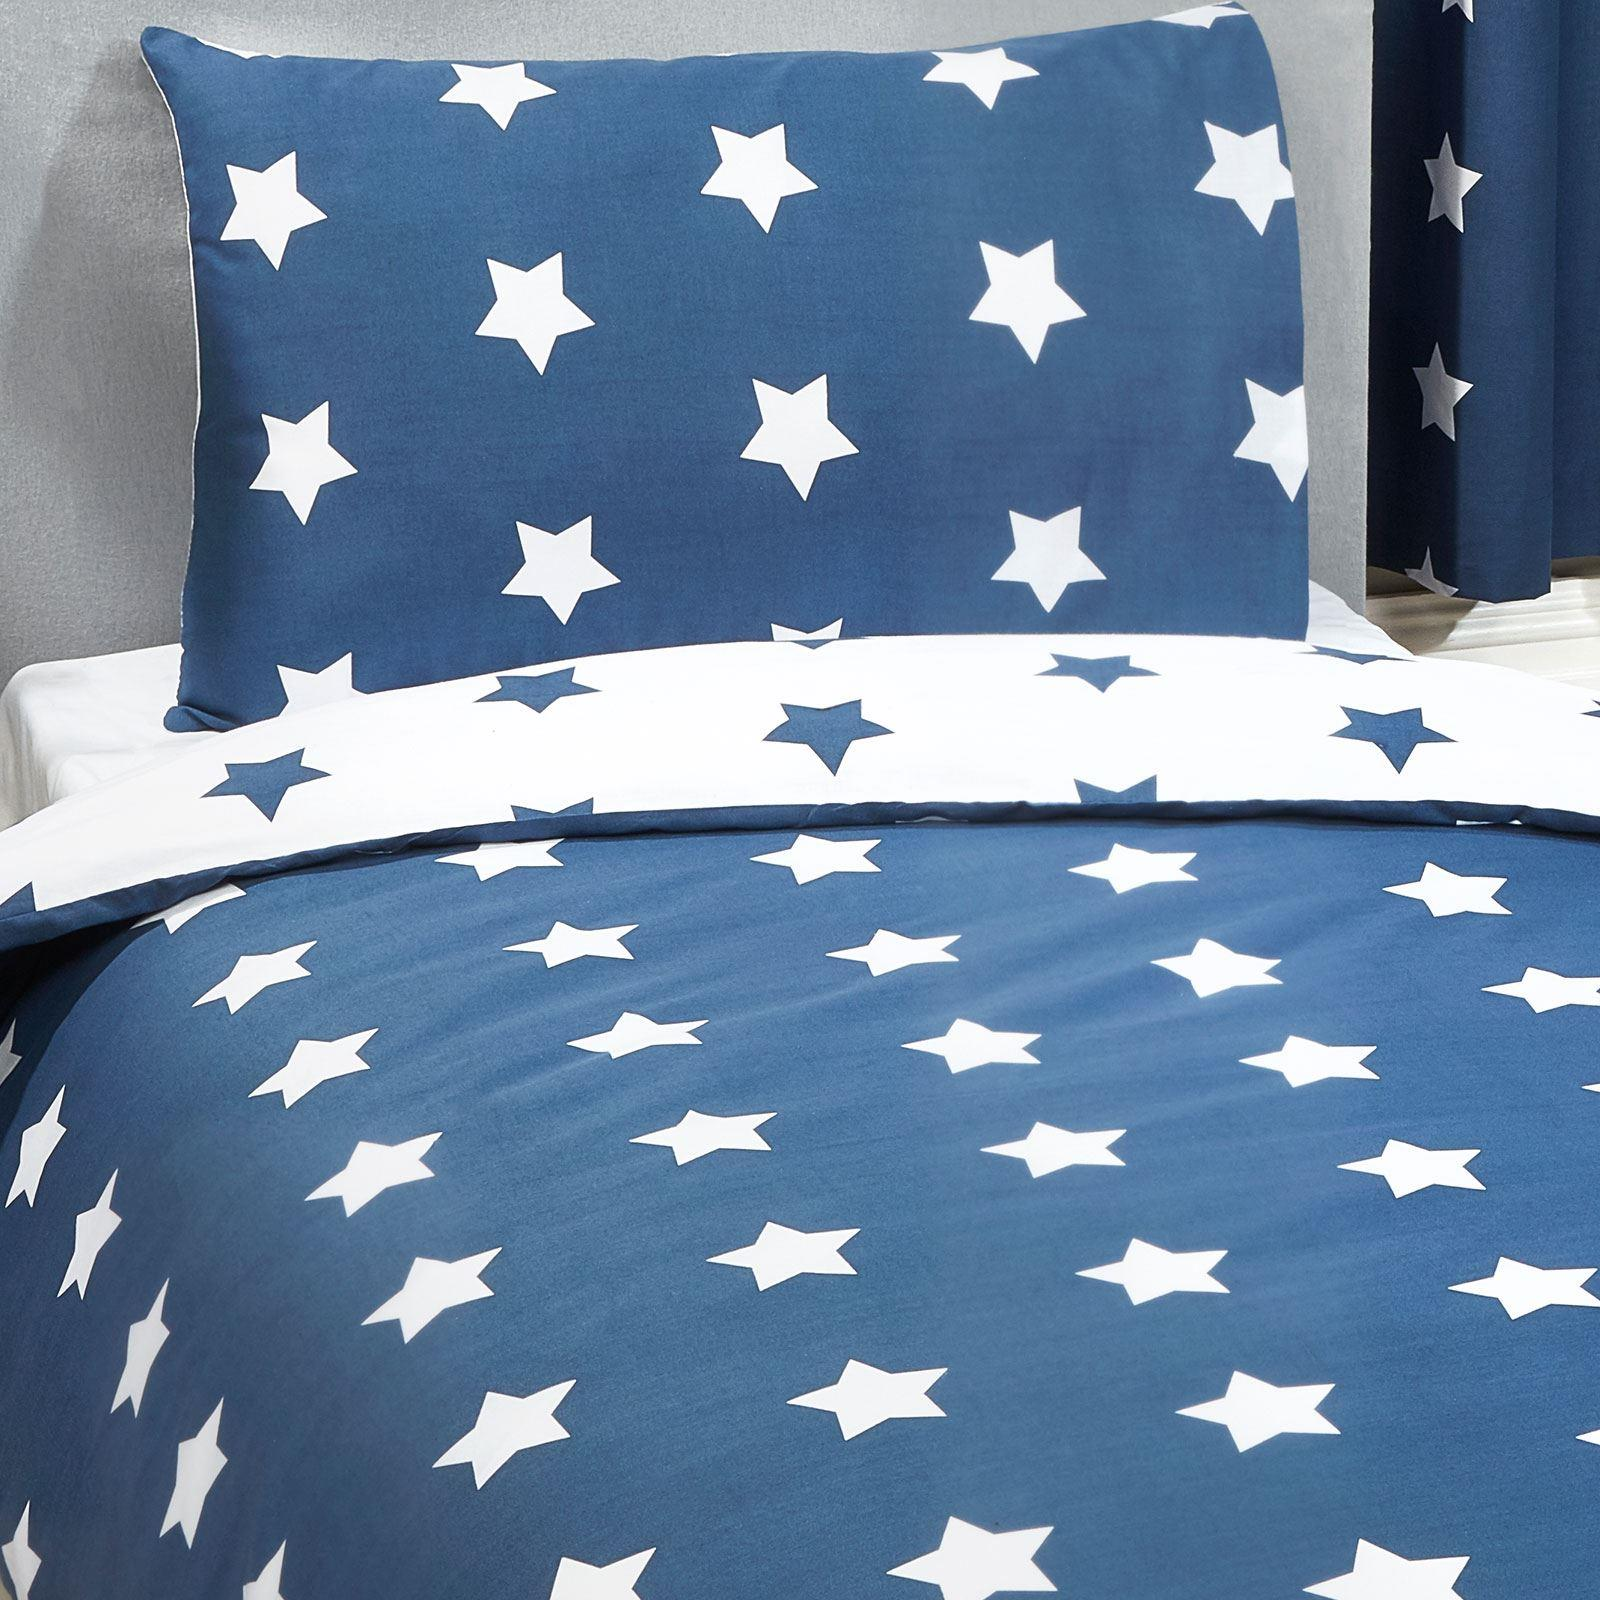 OneDrive | Childrens quilts, Toddler quilt, Boy quilts